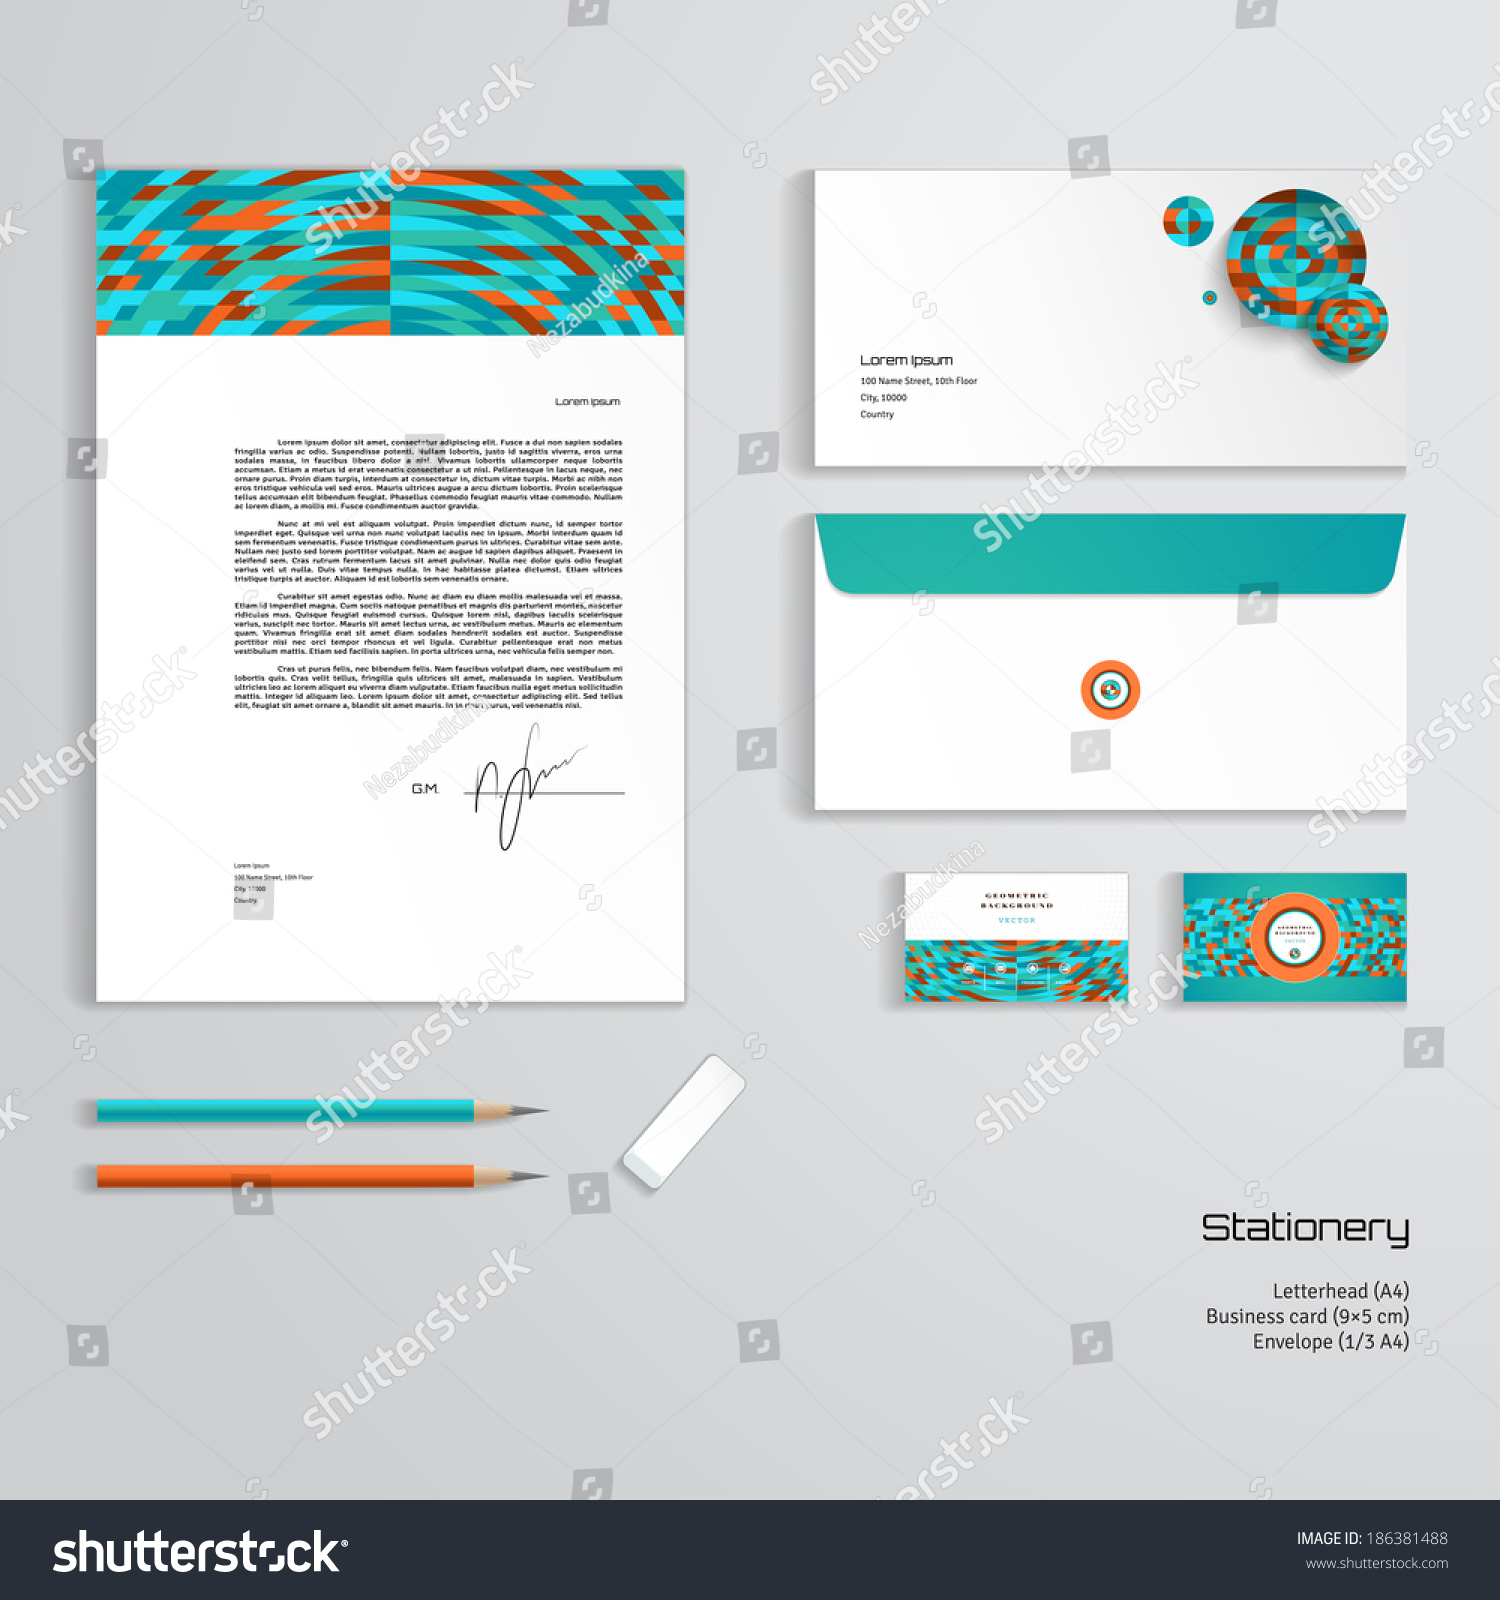 Vector identity templates multicolored geometric ornament stock vector identity templates multicolored geometric ornament letterhead envelope business card pencils friedricerecipe Image collections